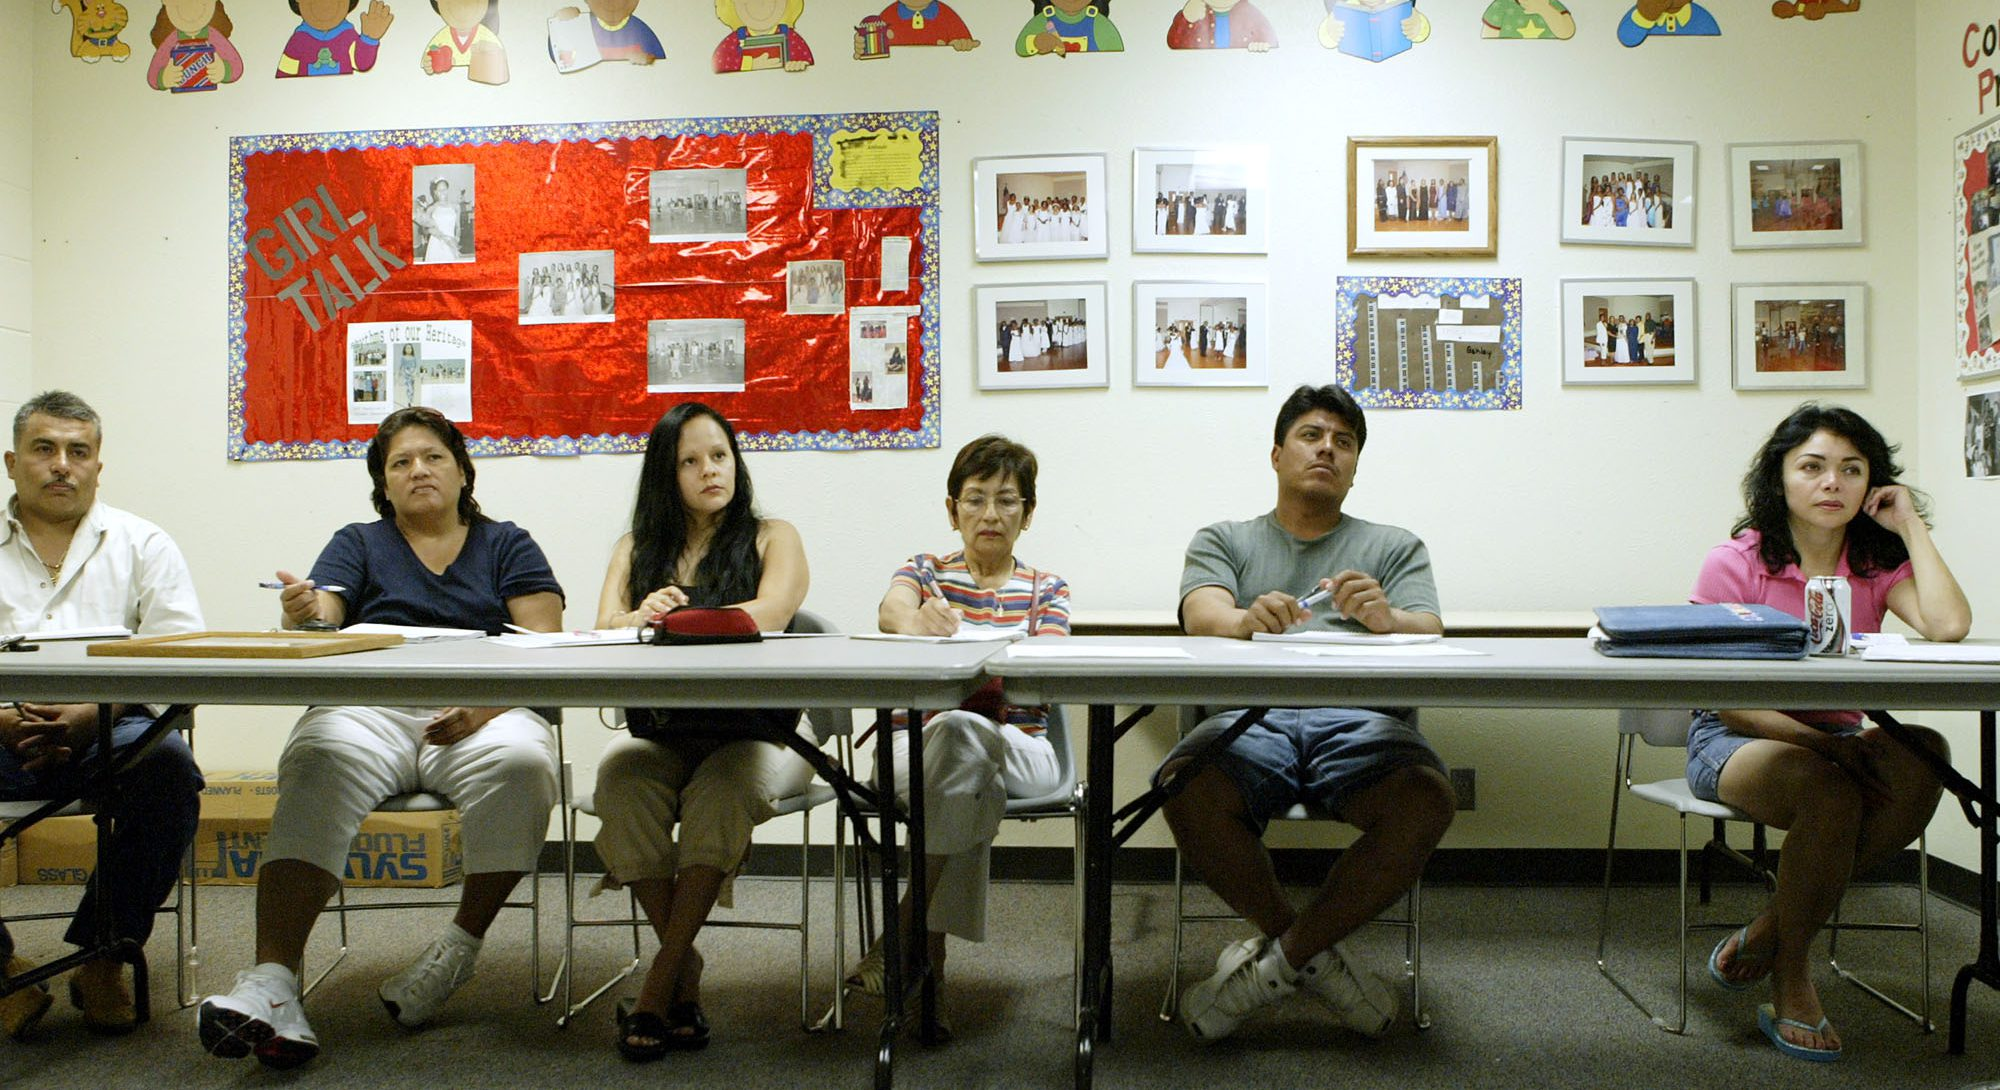 Students attend an English as a Second Language or ESL class at the Douglas Community Center June 8, 2006, in Plano, Texas.